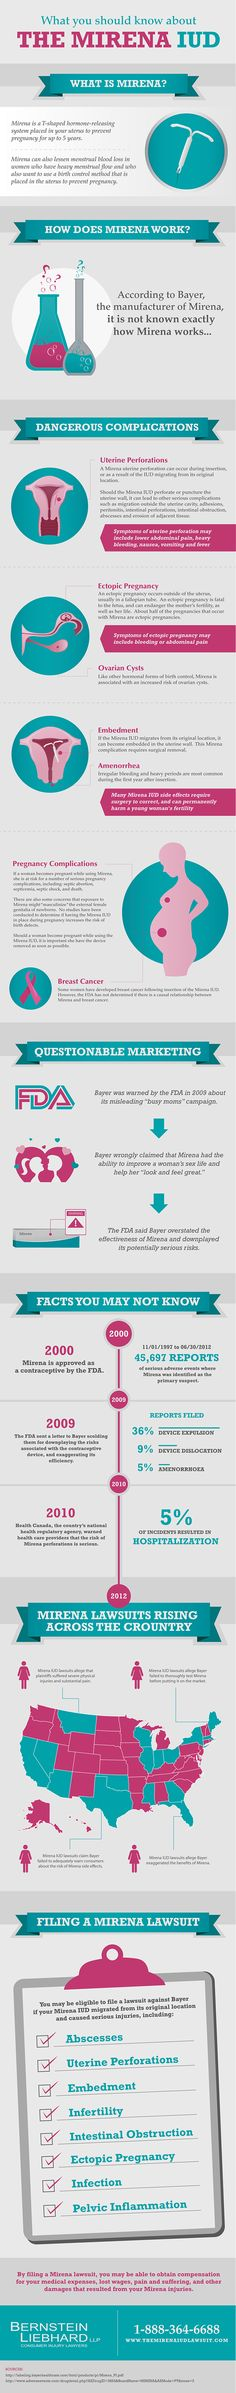 What You Should Know About The Mirena IUD - A number of lawsuits have been filed by women who allege Bayer downplayed the seriousness of possible Mirena side effects.